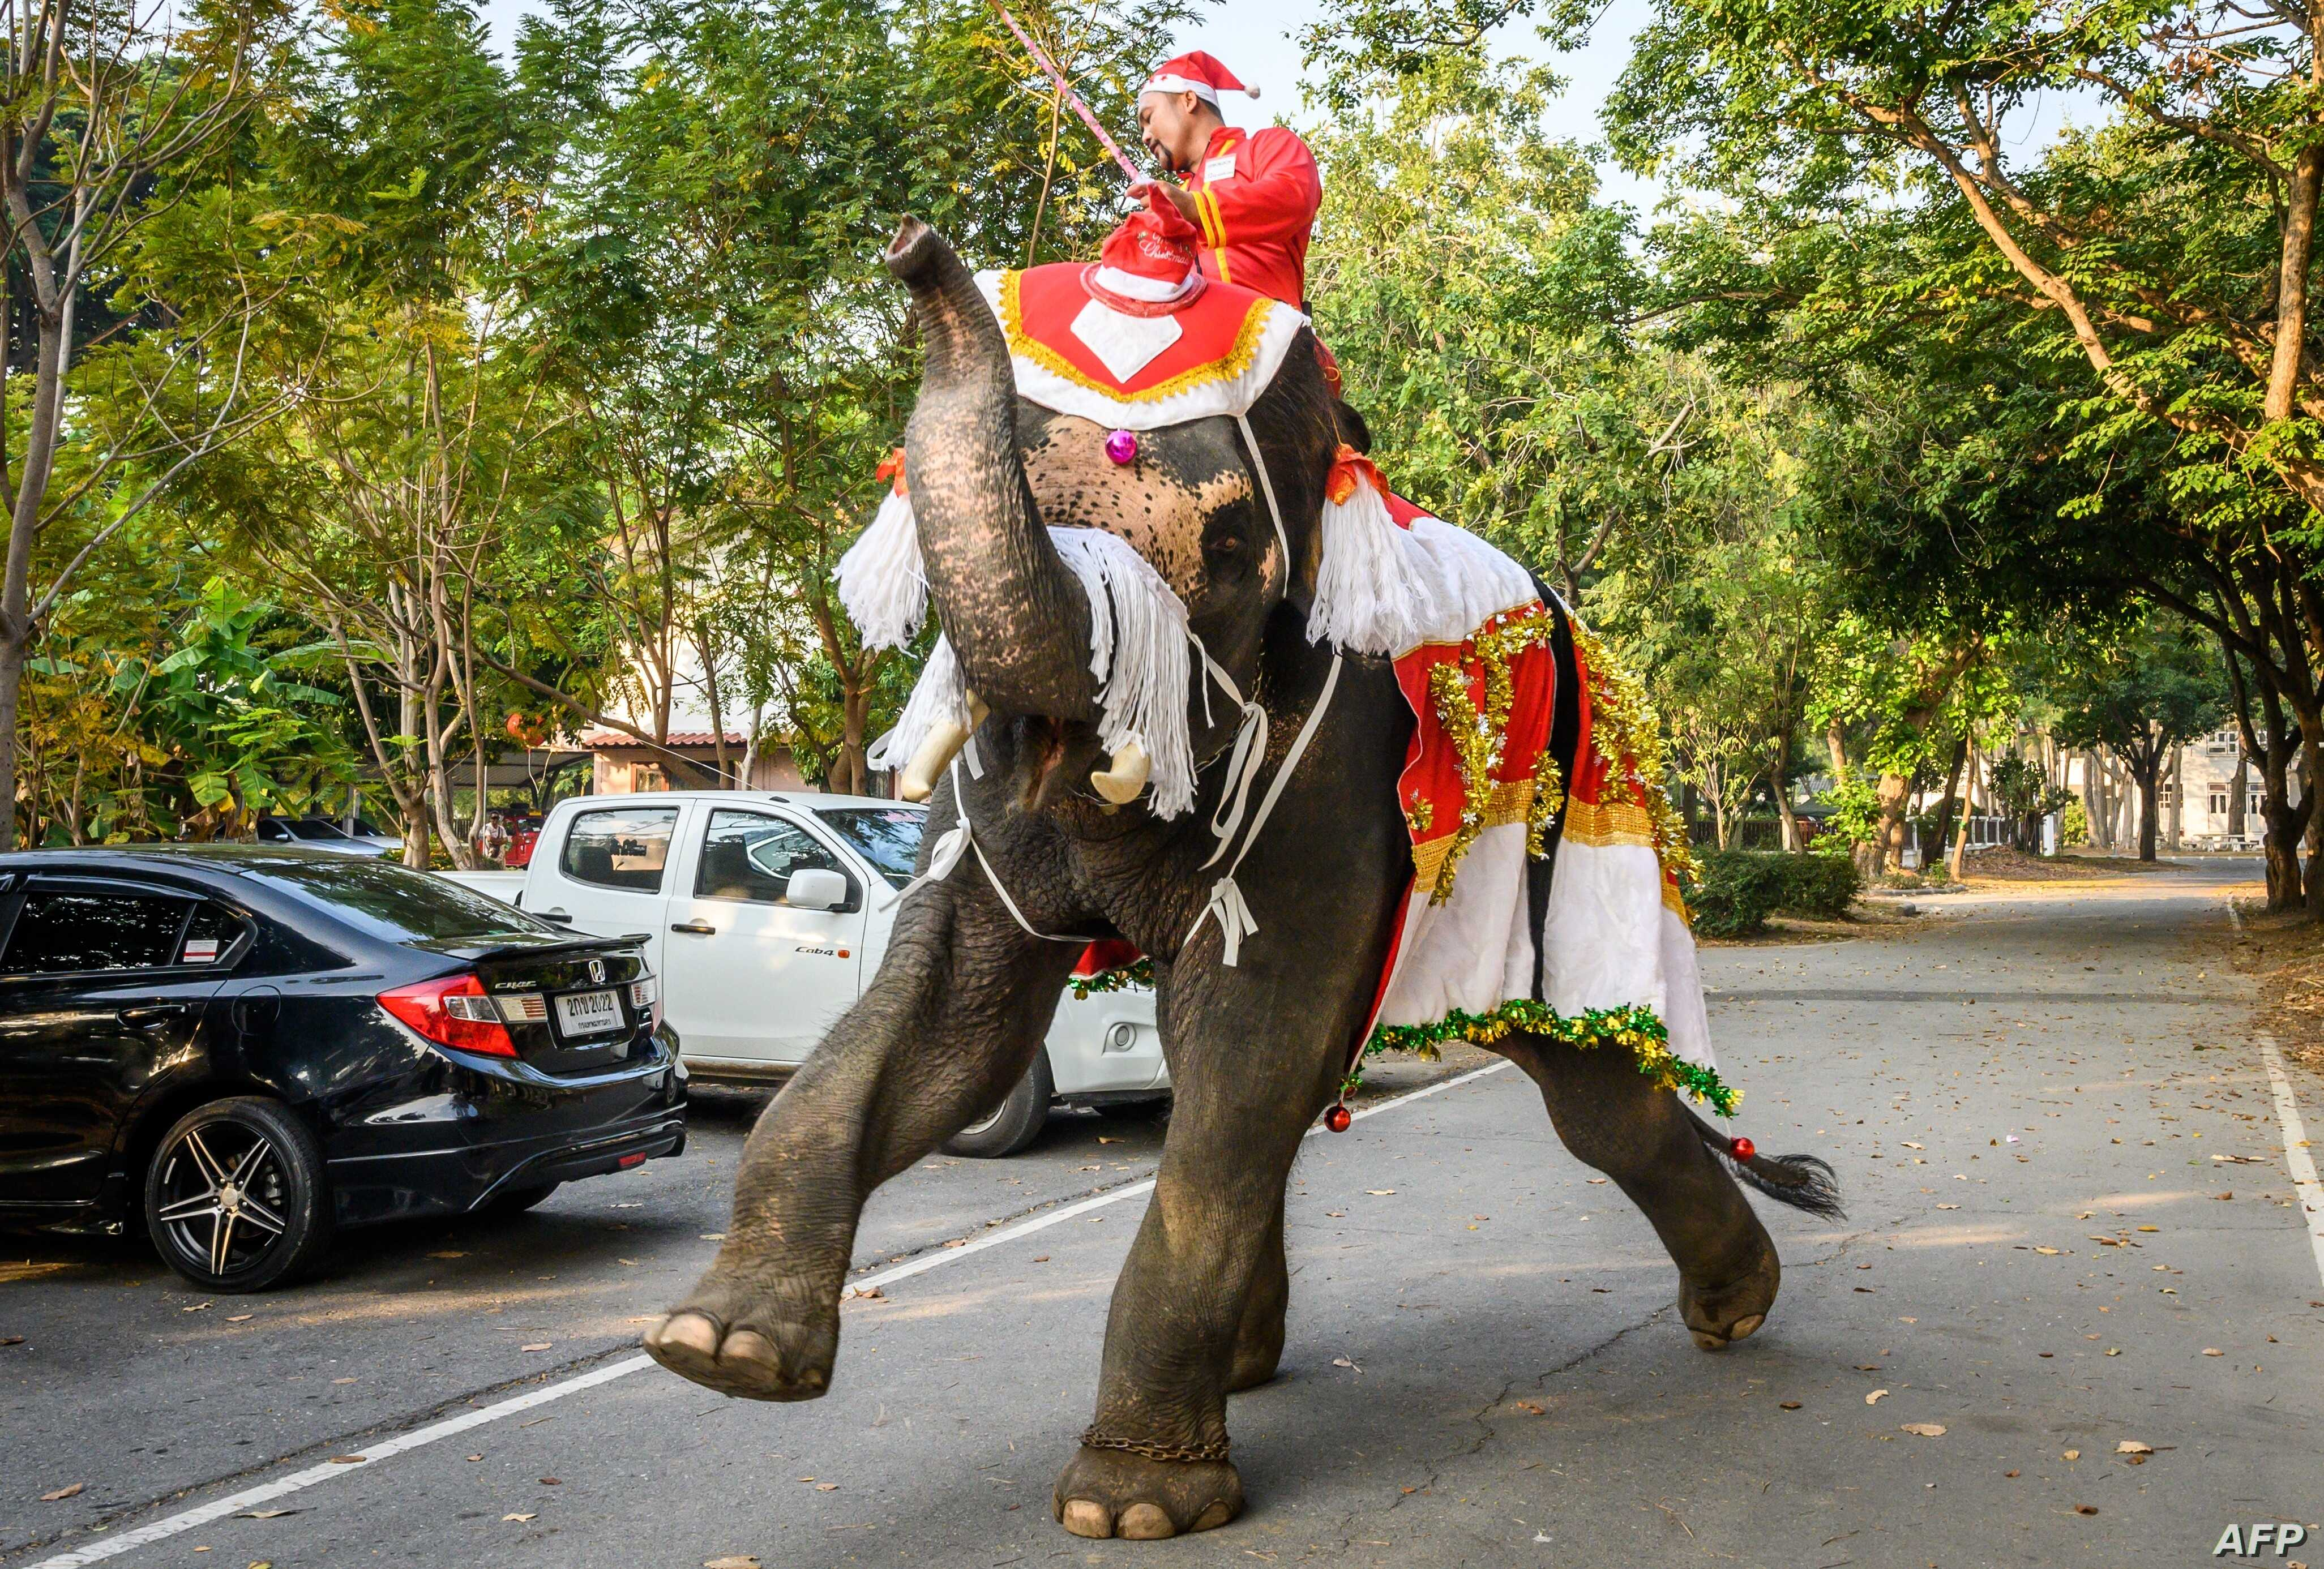 A mahout trains his elephant dressed in a Santa Claus costume before a gift presentation to schoolchildren during Christmas celebrations in Ayutthaya, Thailand, Dec. 23, 2019.